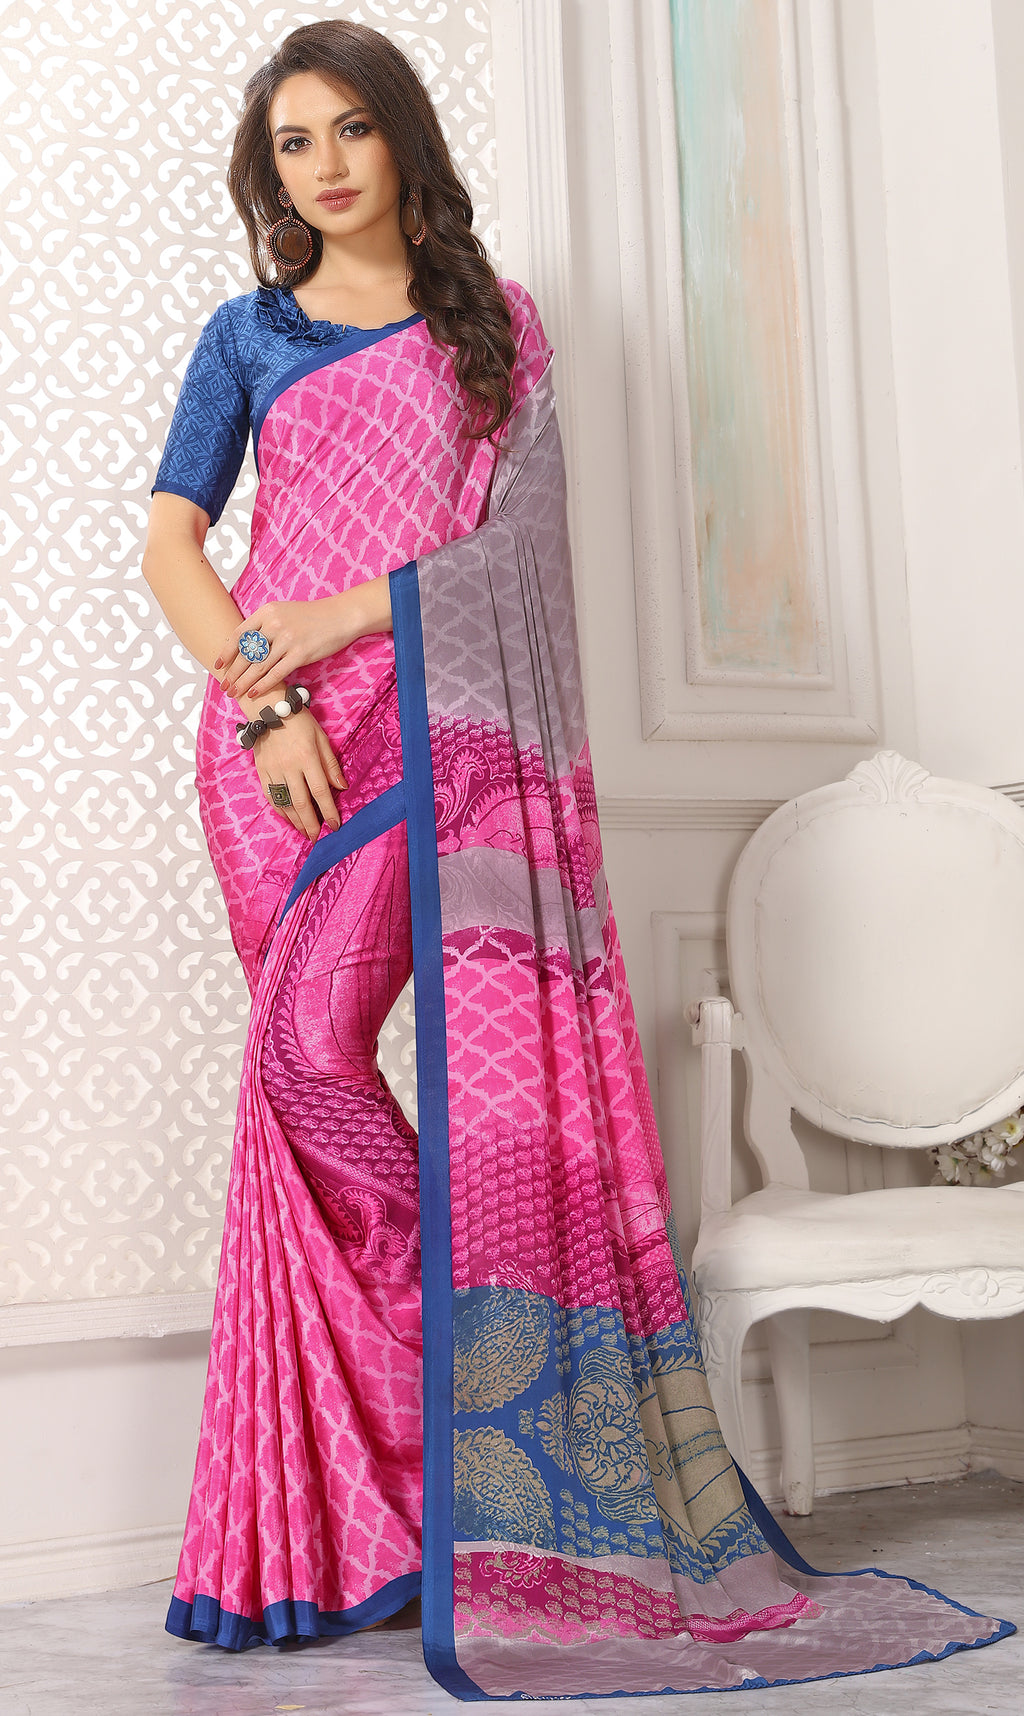 Pink Color Crepe  Digital Print Kitty Party Sarees NYF-8114